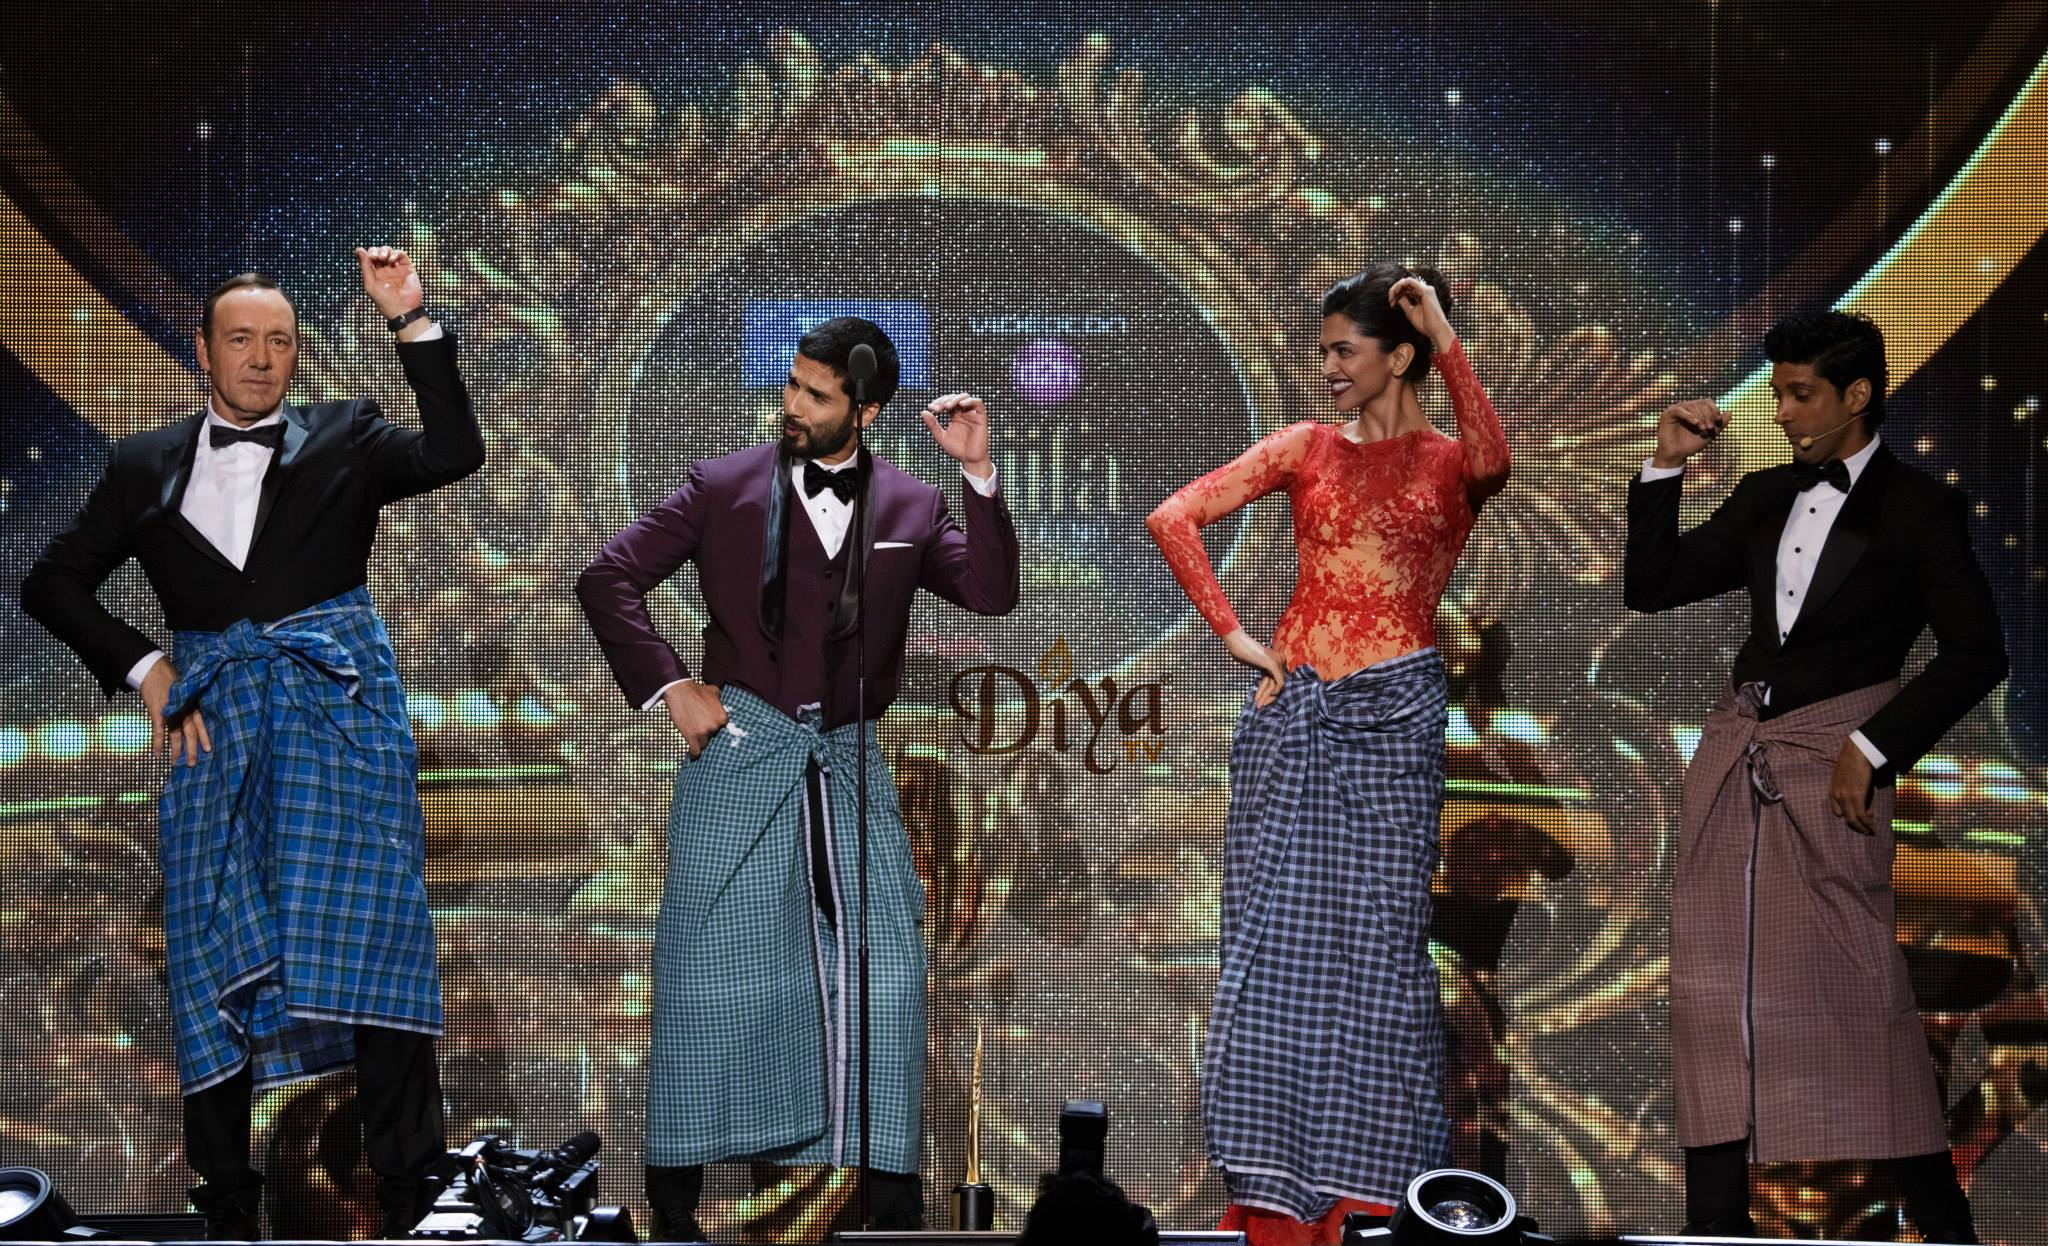 Moments before Deepika Padukone accepted her IIFA, she taught Kevin Spacey how to do the lungi dance.